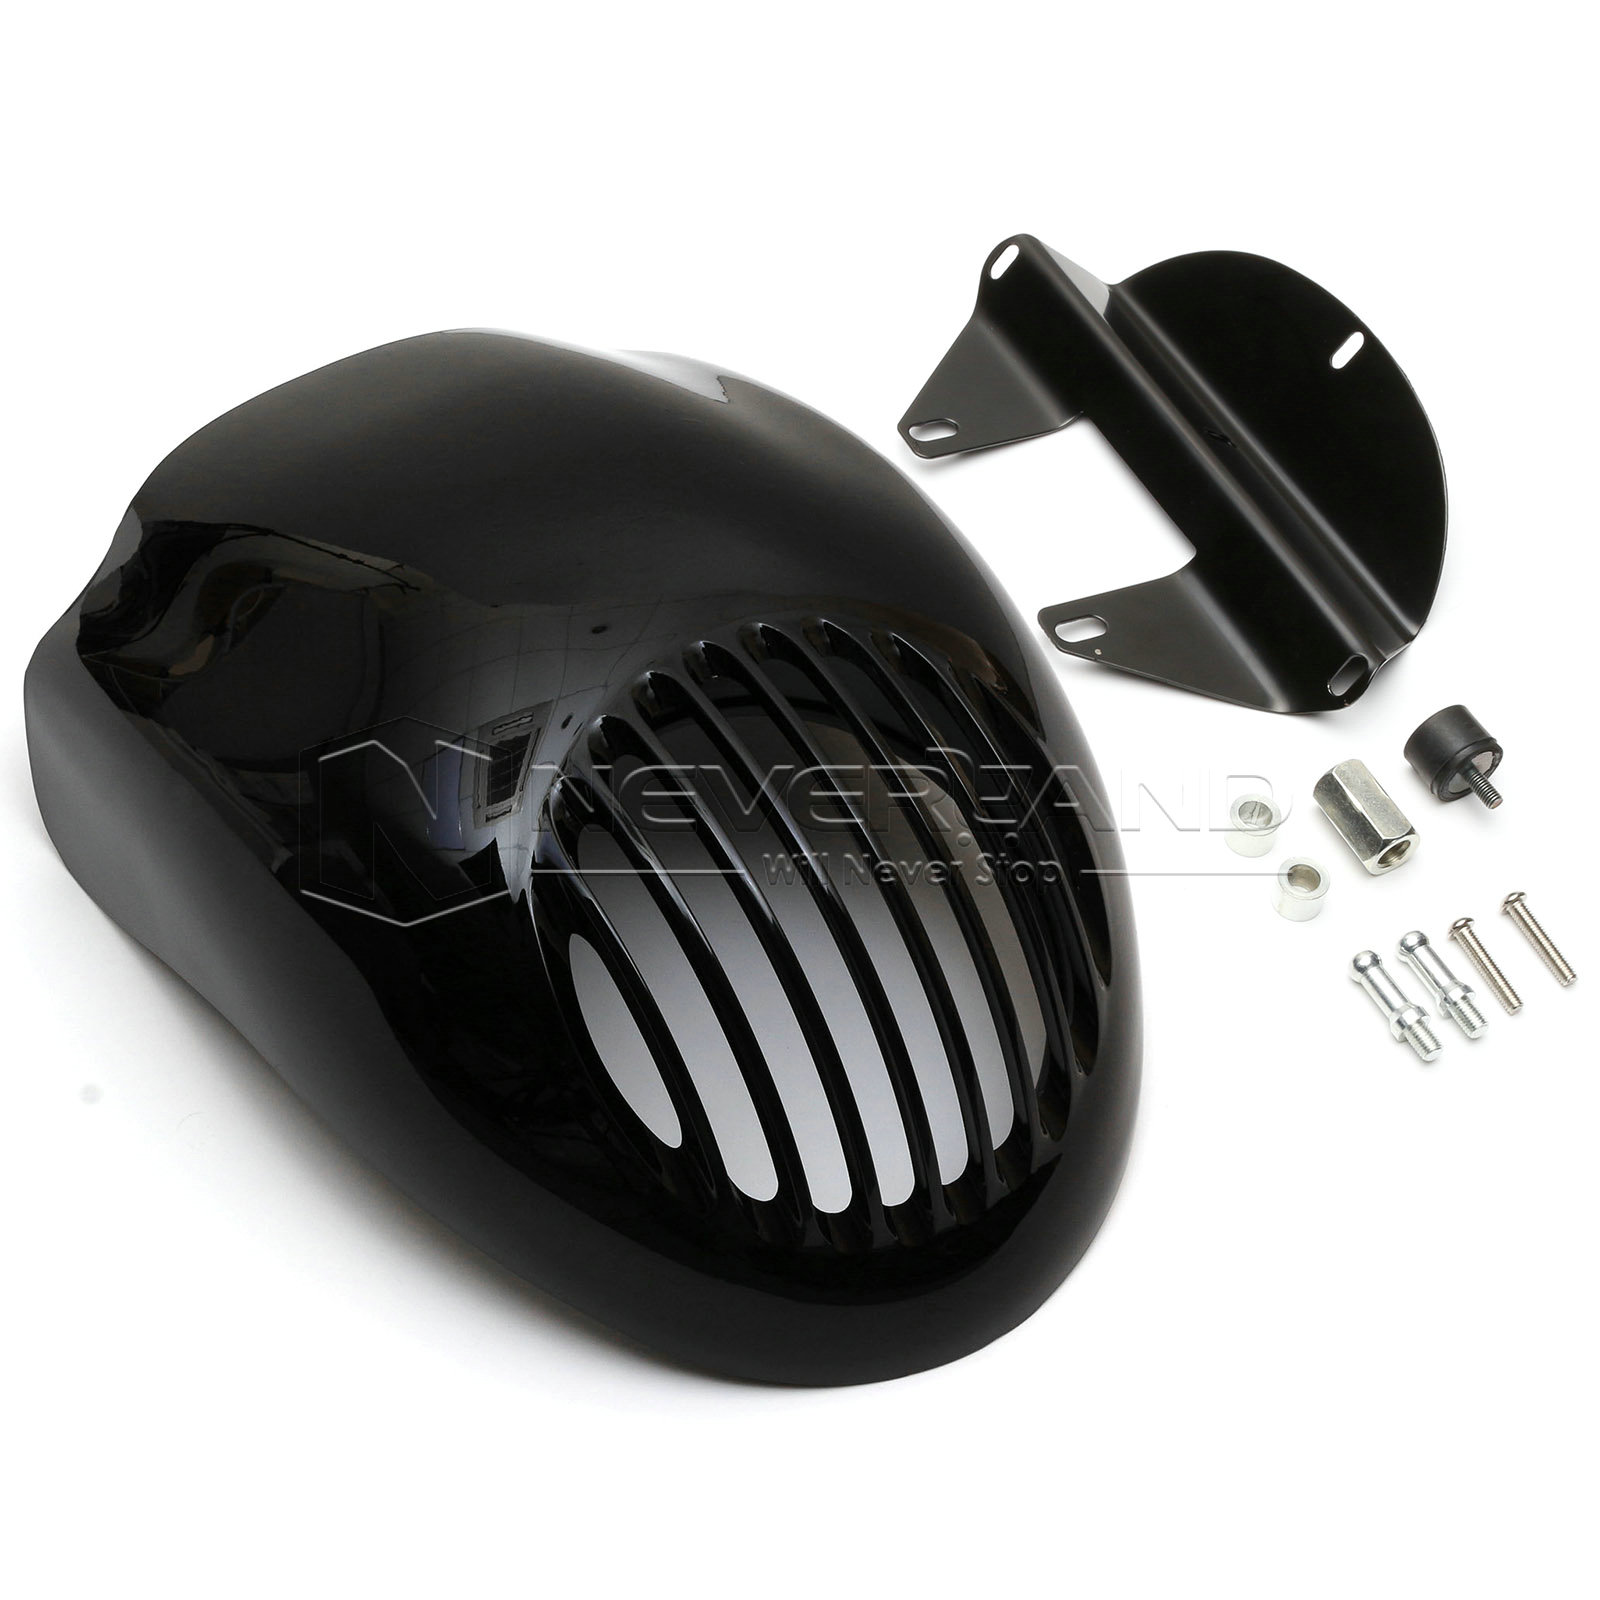 Gloss Black Front Cowl Fork Mount Headlight Fairing Visor Grill Mask For Harley Sportster Dyna XL FX 883 Freeshipping D30 конструктор город мастеров космические сражения ll 8018 r